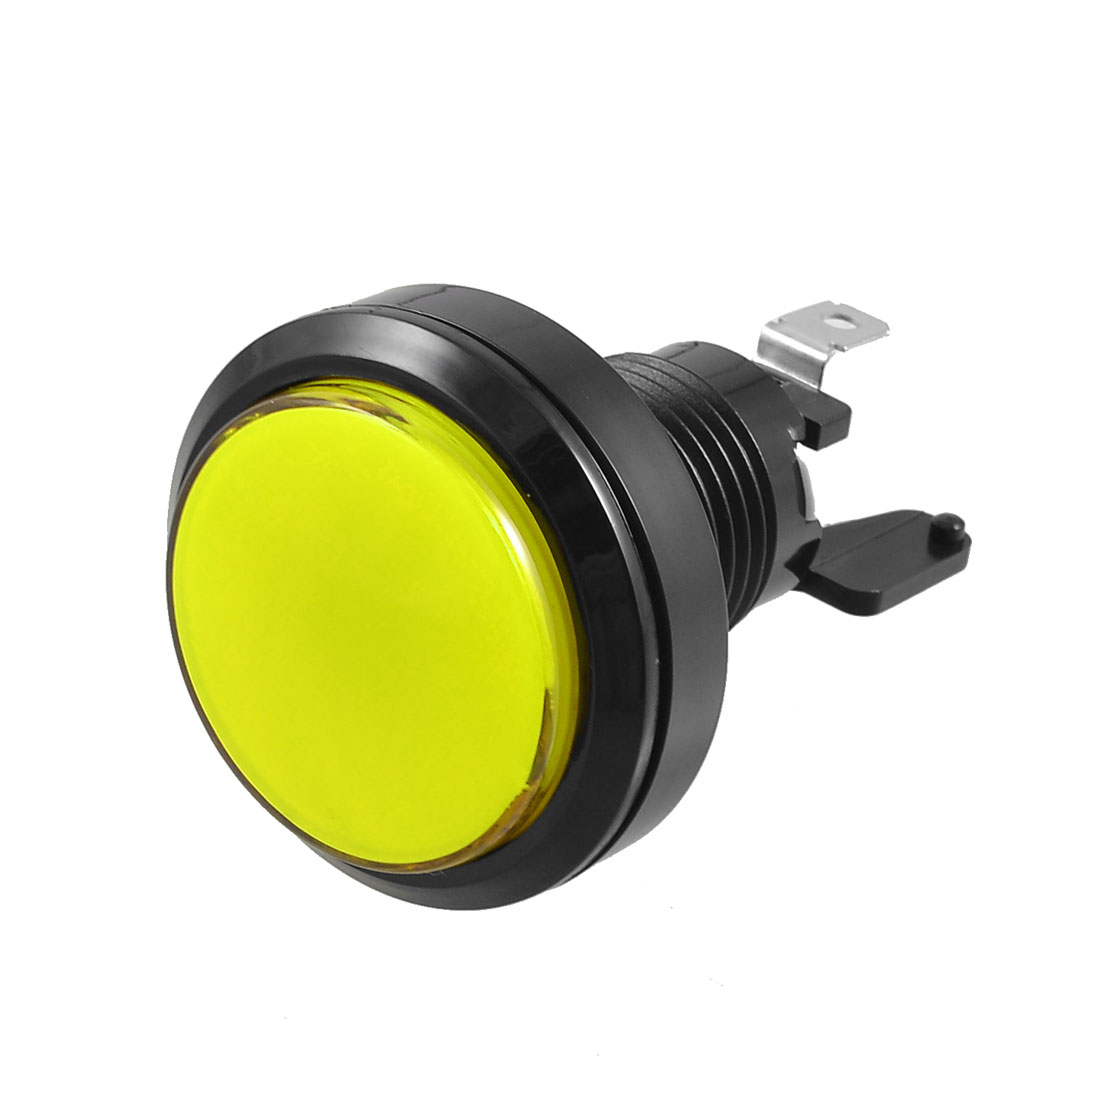 Arcade Game Machines 36mm Dia Yellow Cap Momentary Push Button Switch